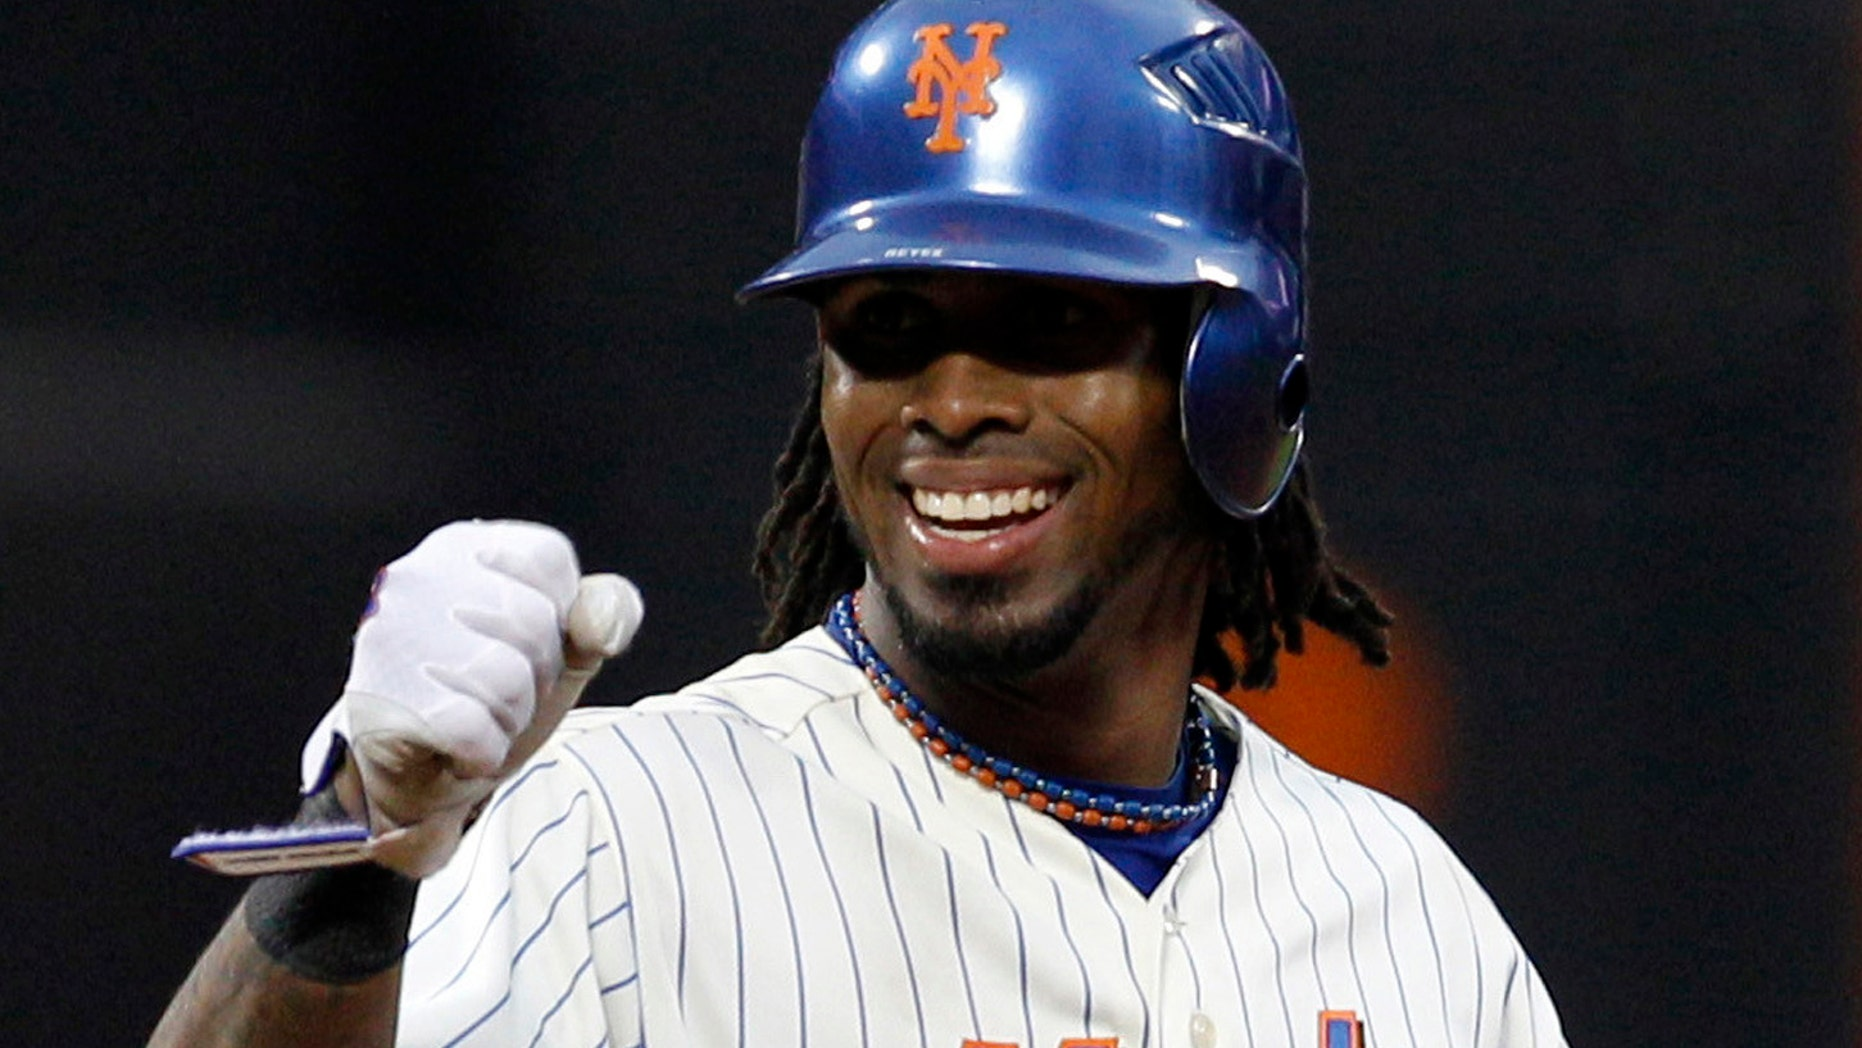 FILE - In this Sept. 29, 2010, file photo, New York Mets shortstop Jose Reyes reacts after hitting a double during the first game of a baseball doubleheader against the Milwaukee Brewers at Citi Field in New York.  (AP Photo/Kathy Willens, File)